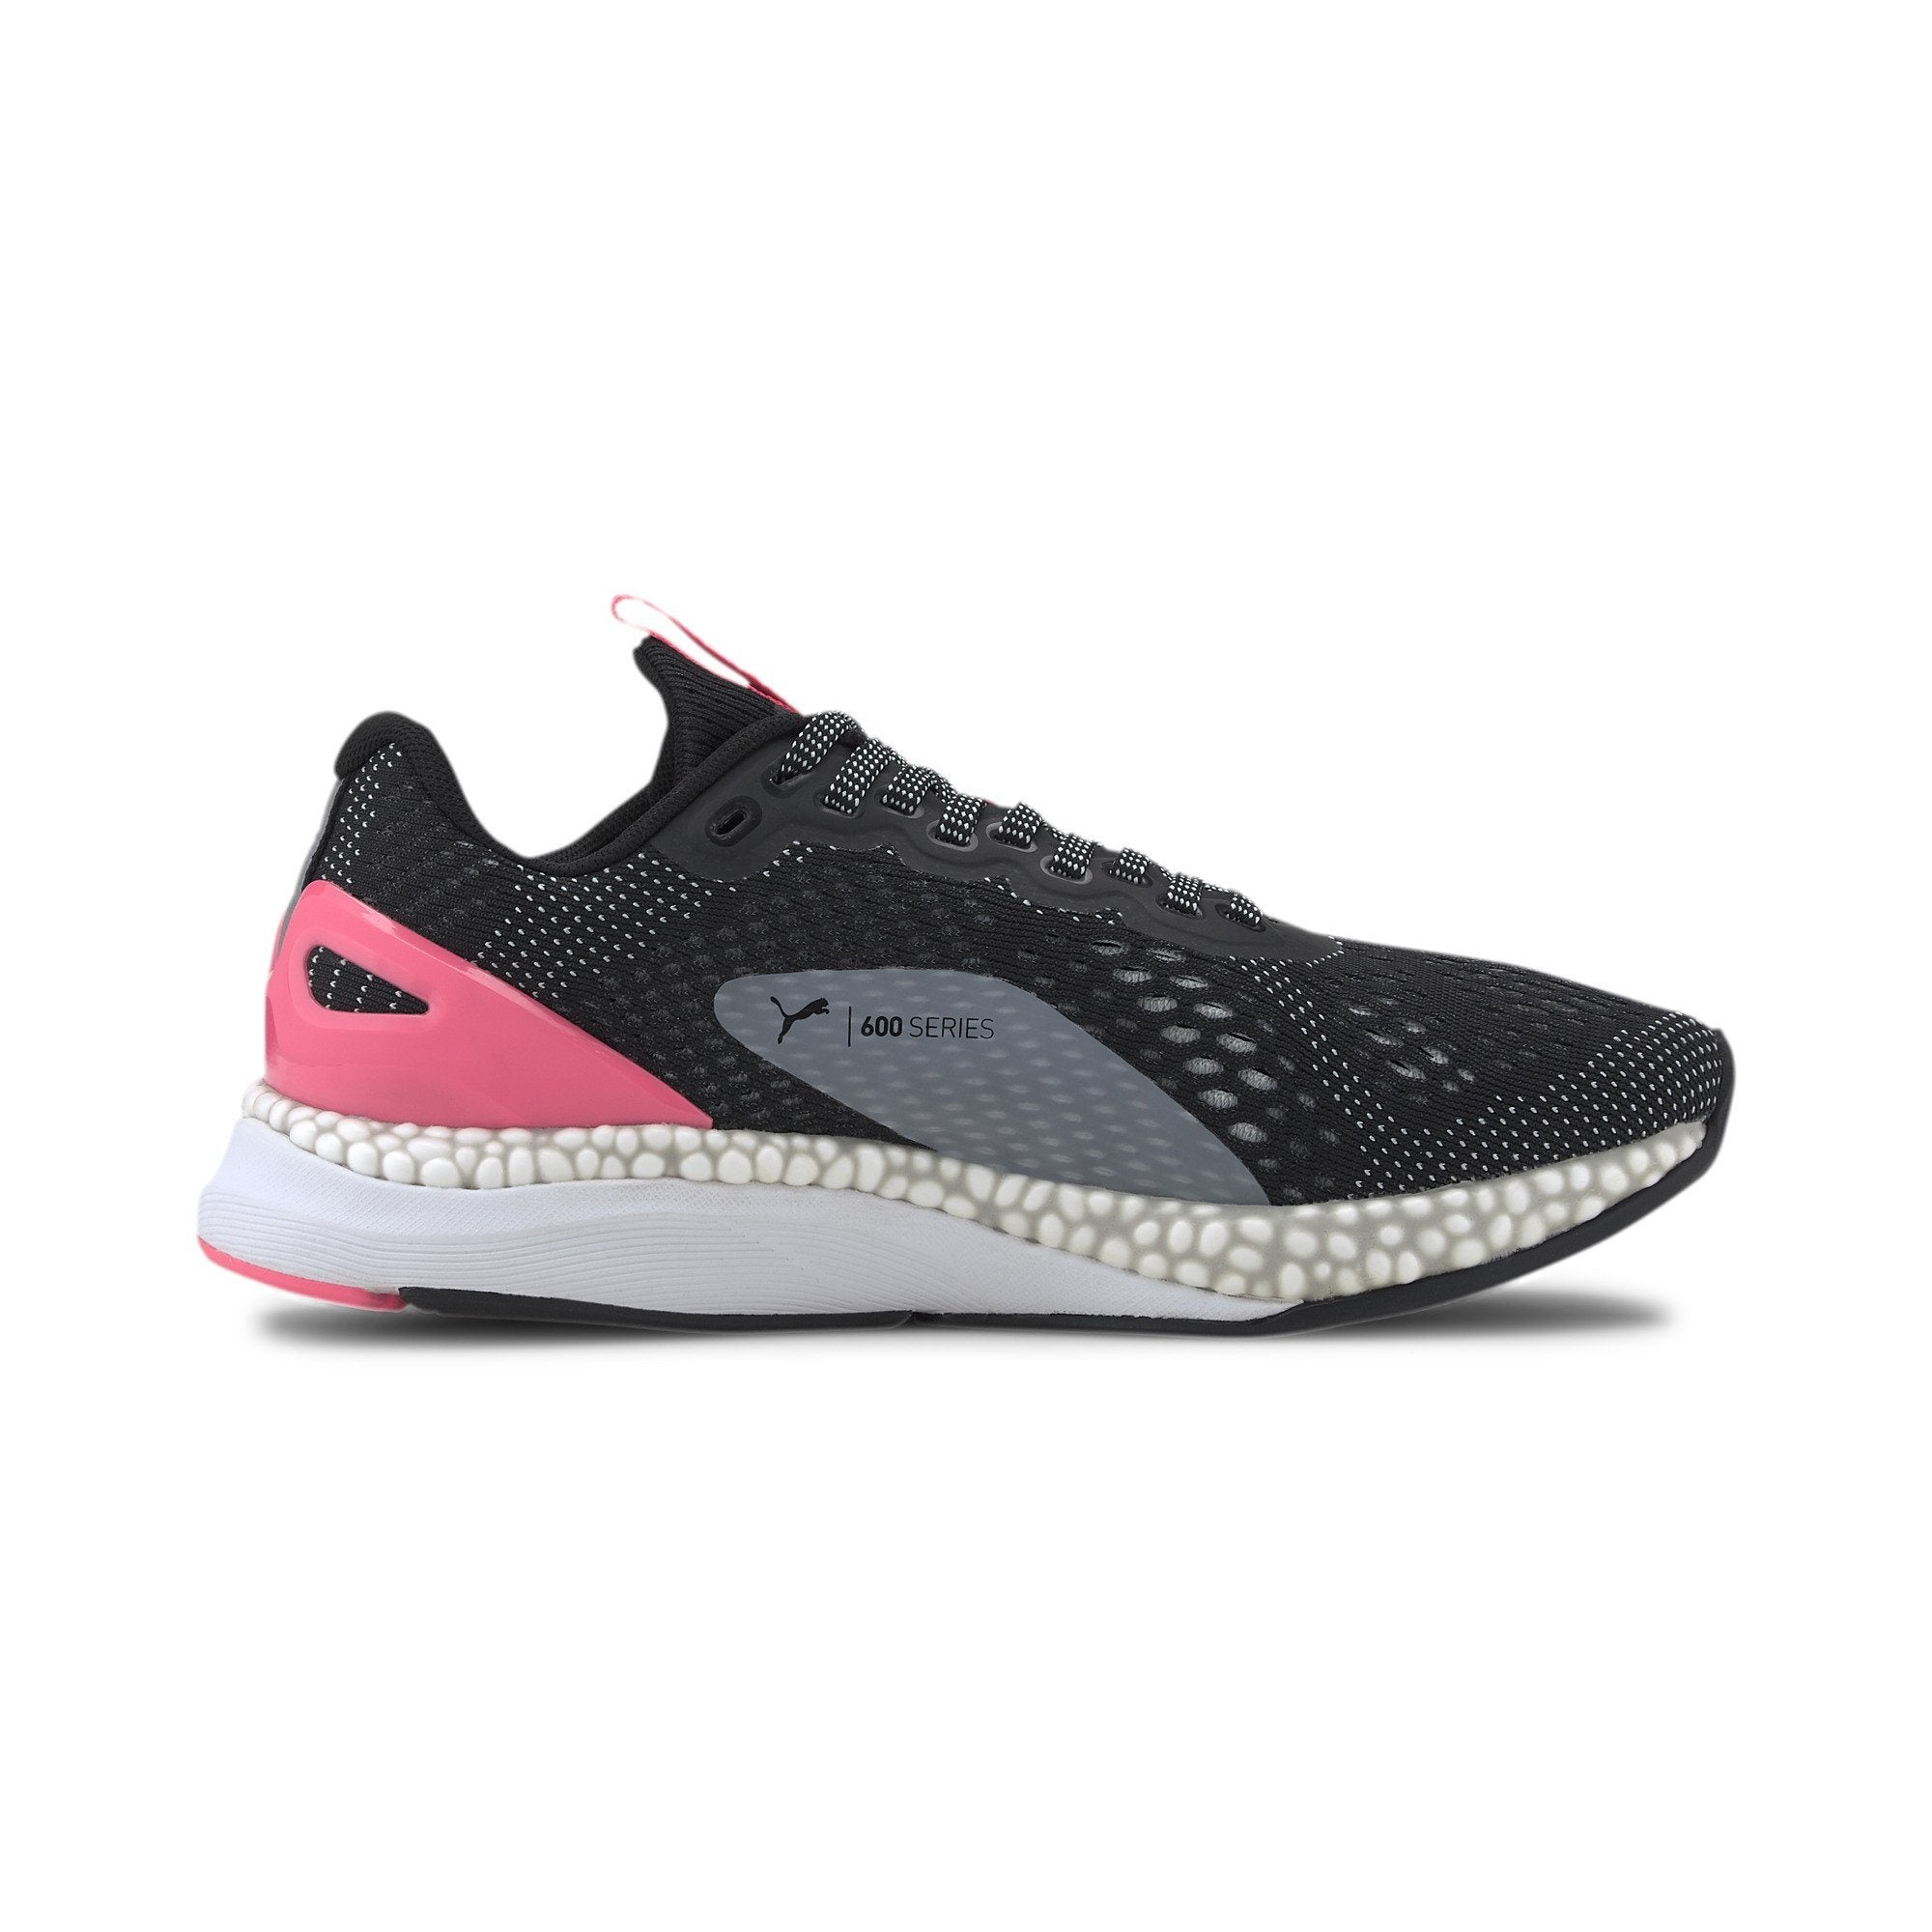 SPEED 600 2 Wn s Puma Black-Ignite Pink SP-Footwear-Womens Puma